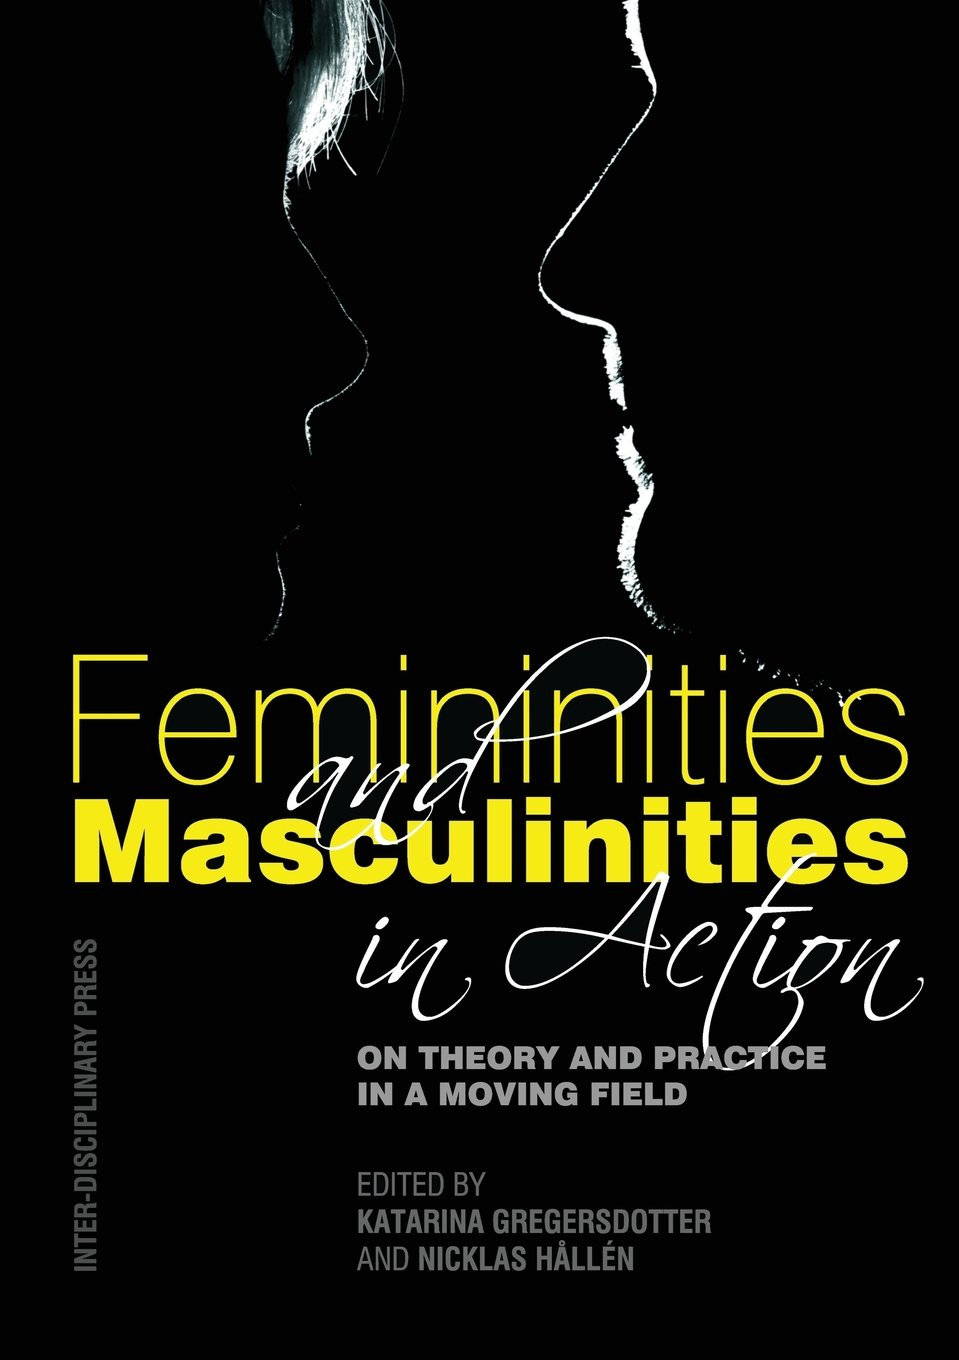 Femininities and Masculinities in Action